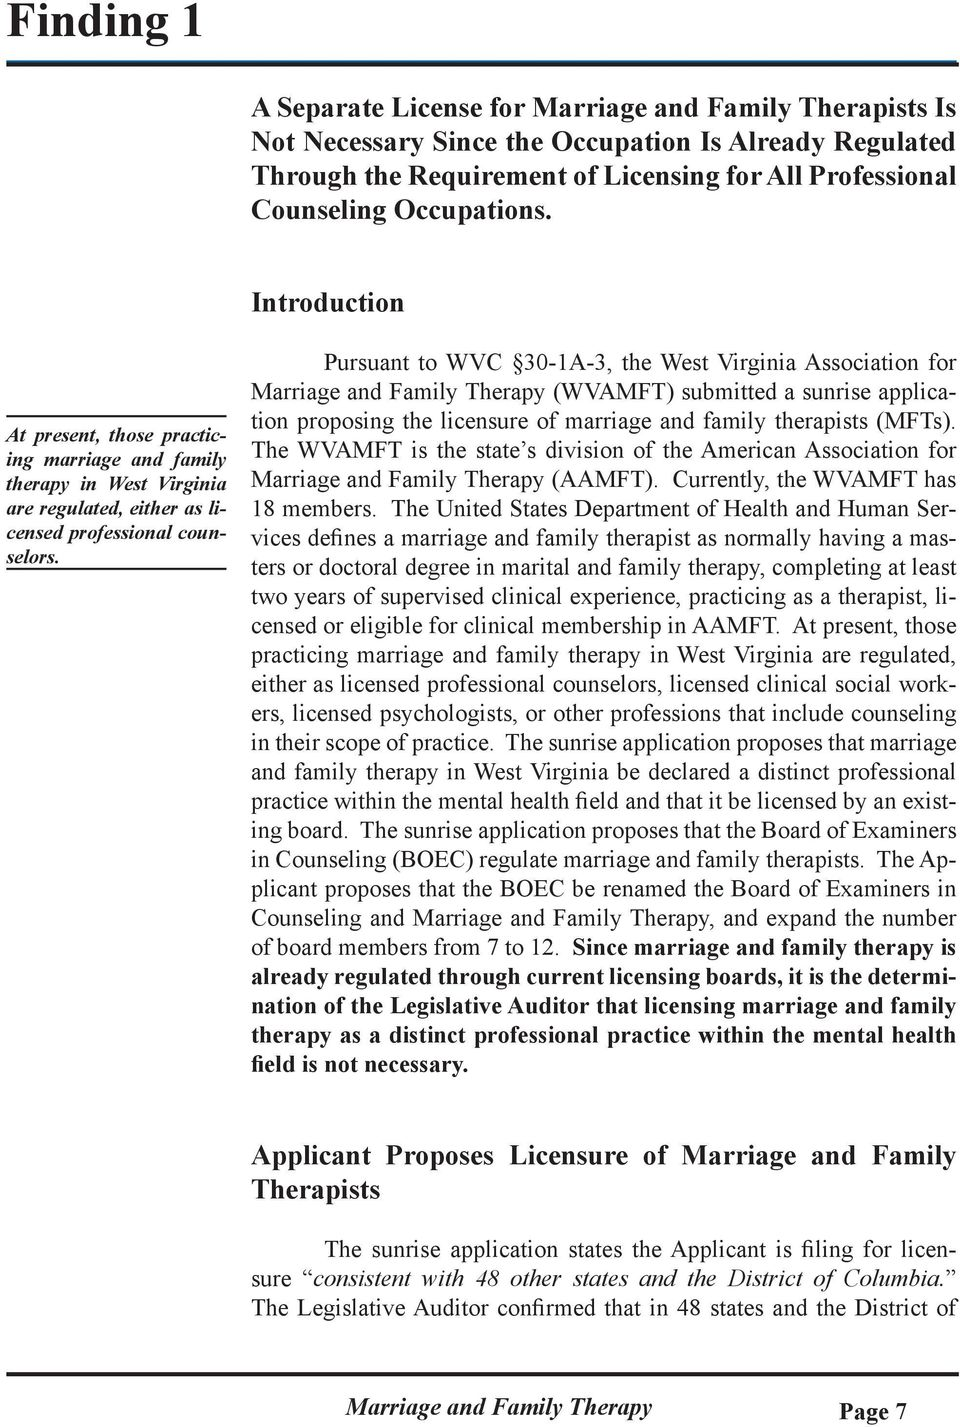 Pursuant to WVC 30-1A-3, the West Virginia Association for Marriage and Family Therapy (WVAMFT) submitted a sunrise application proposing the licensure of marriage and family therapists (MFTs).